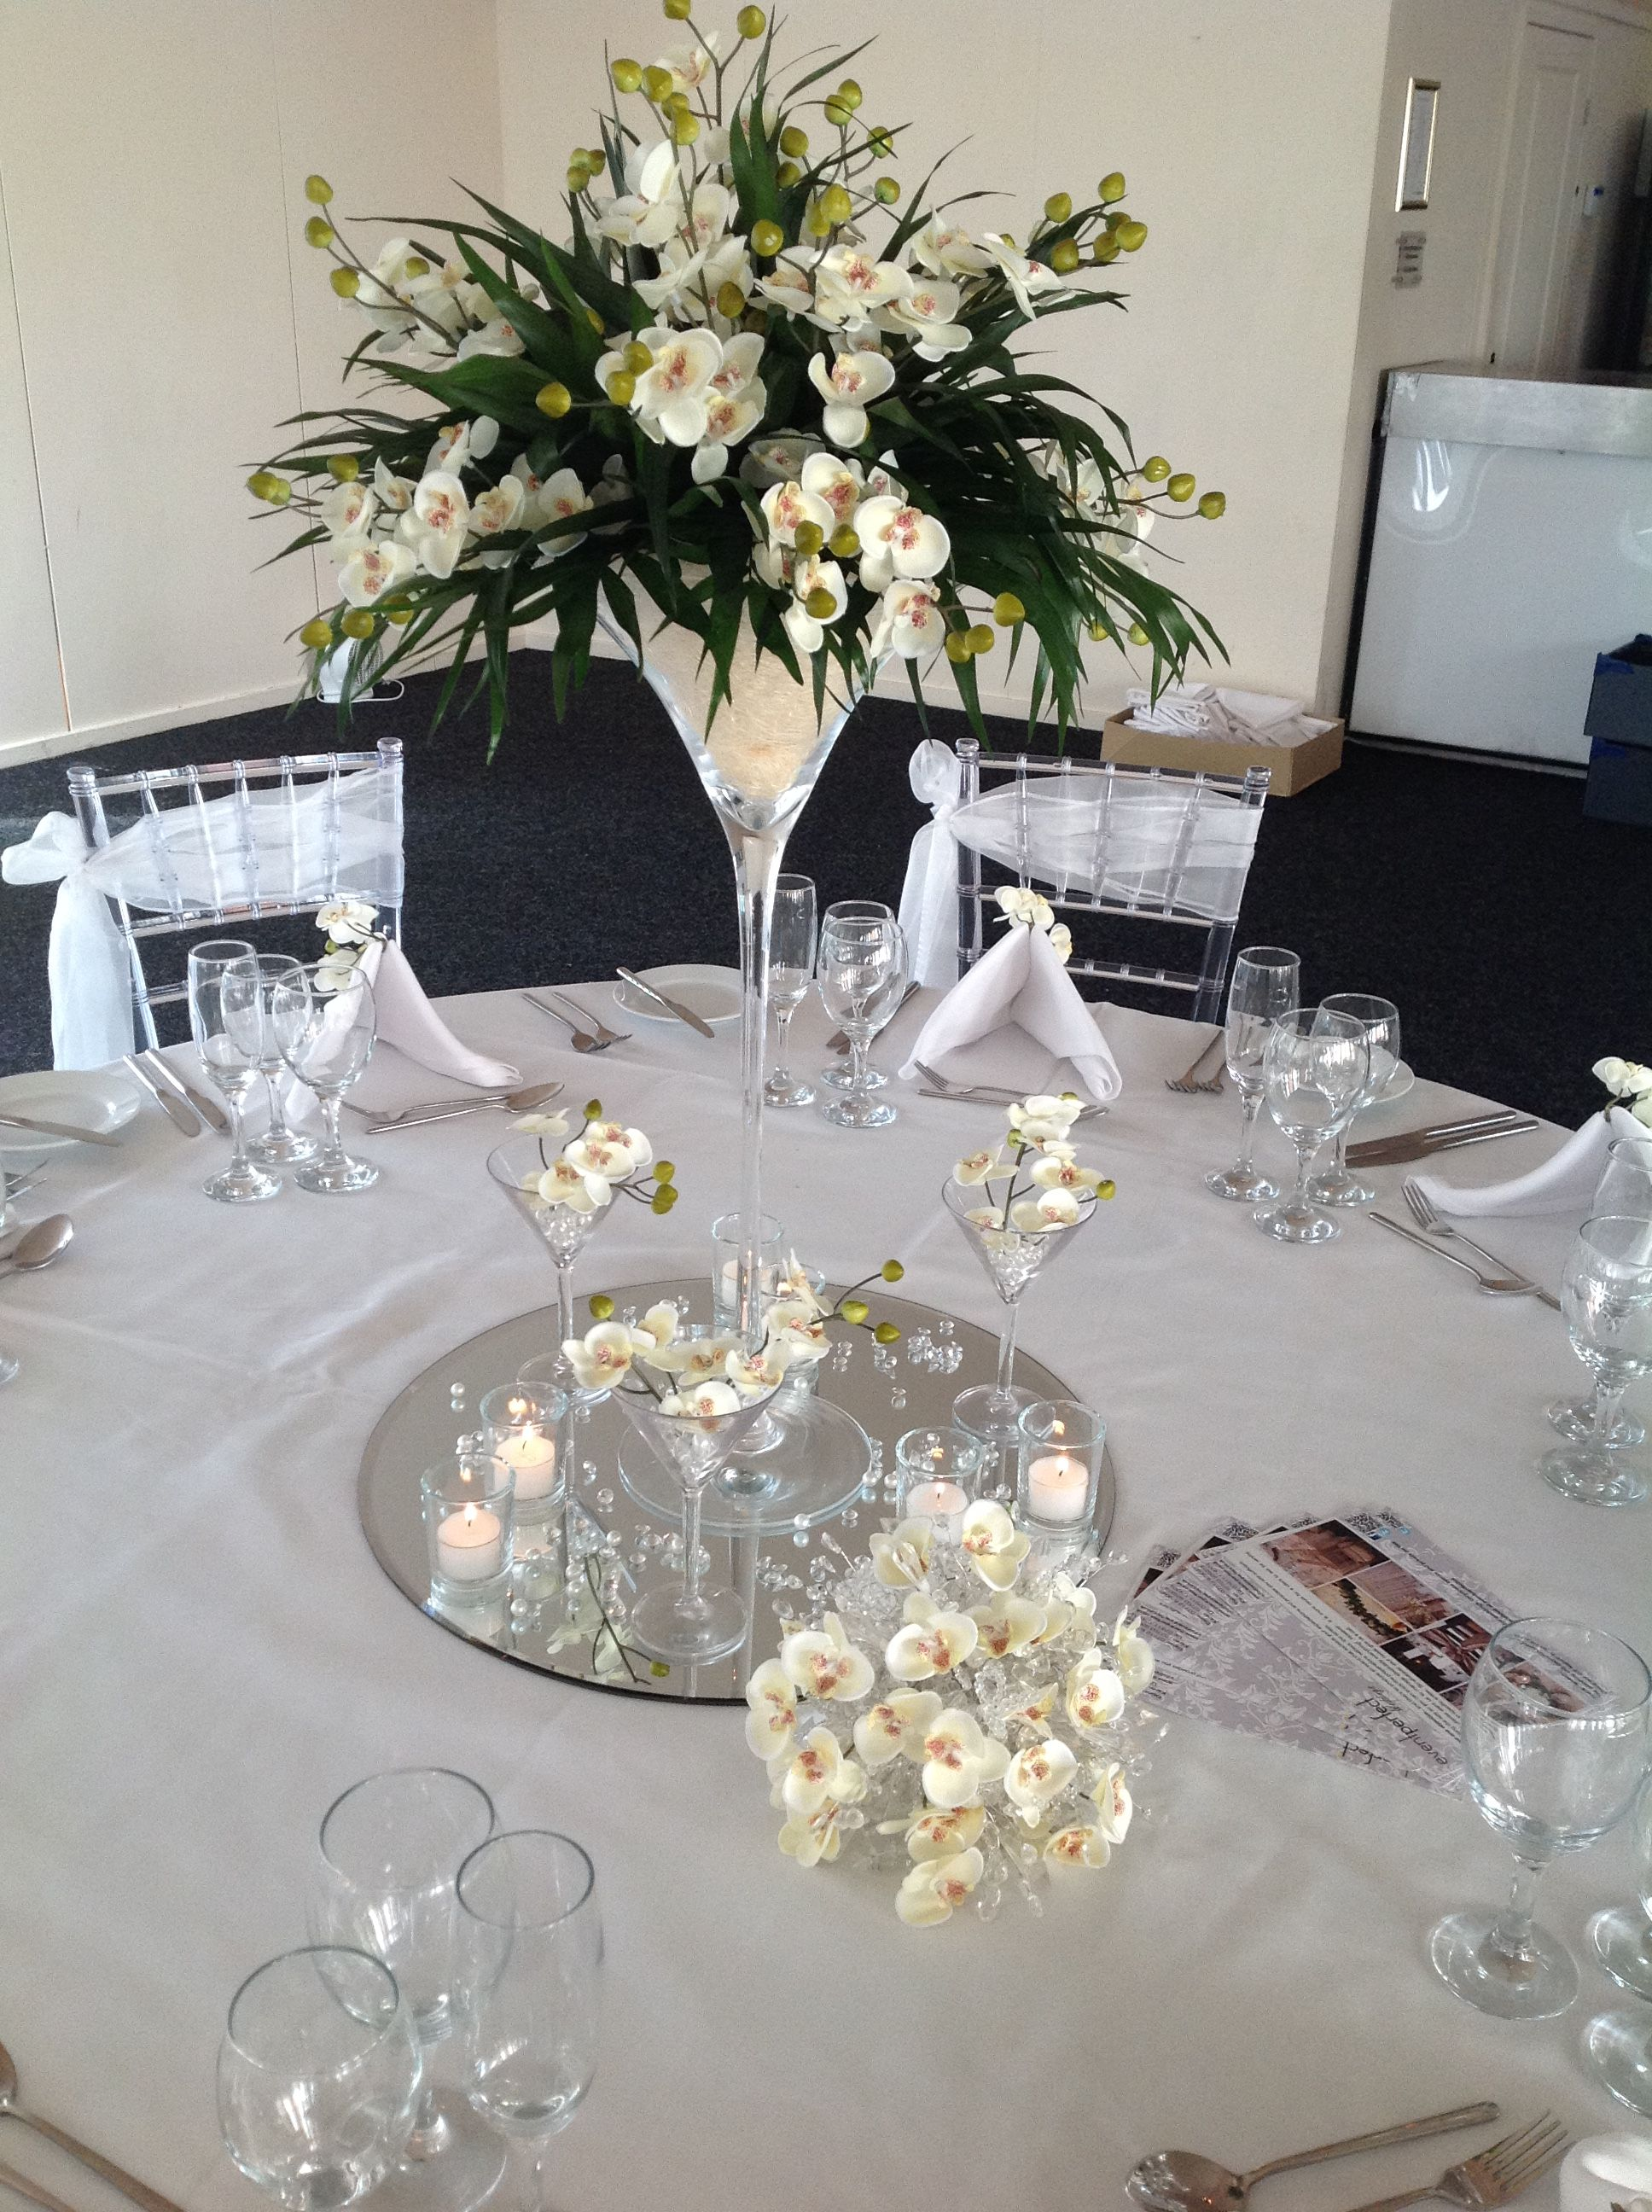 Mirror Tiles For Table Decorations Floral Arrangement Set In A Martini Glass On Mirror Tile Base With